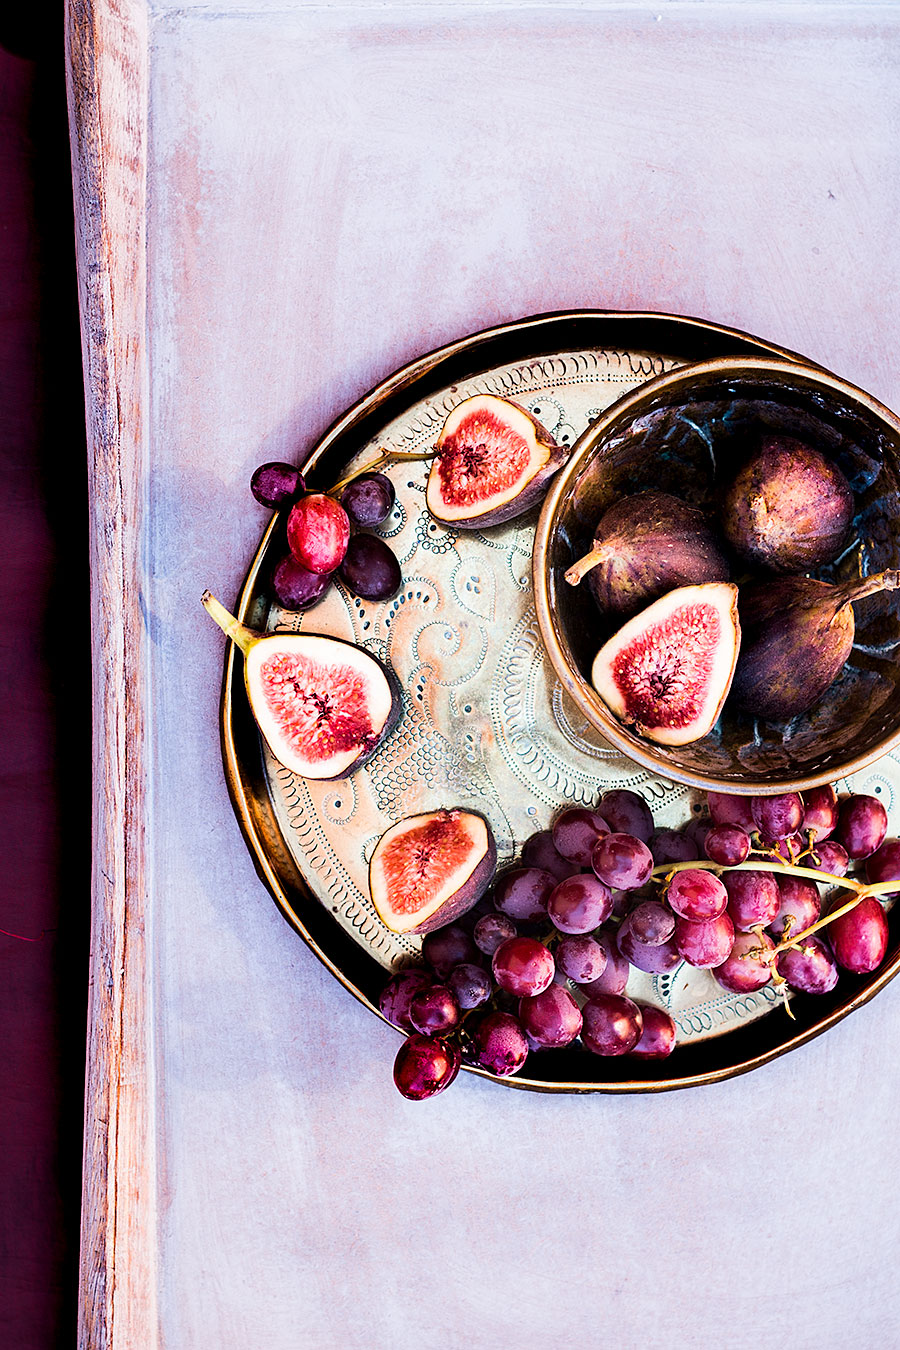 Figs and grapes by Laura Domingo.jpg